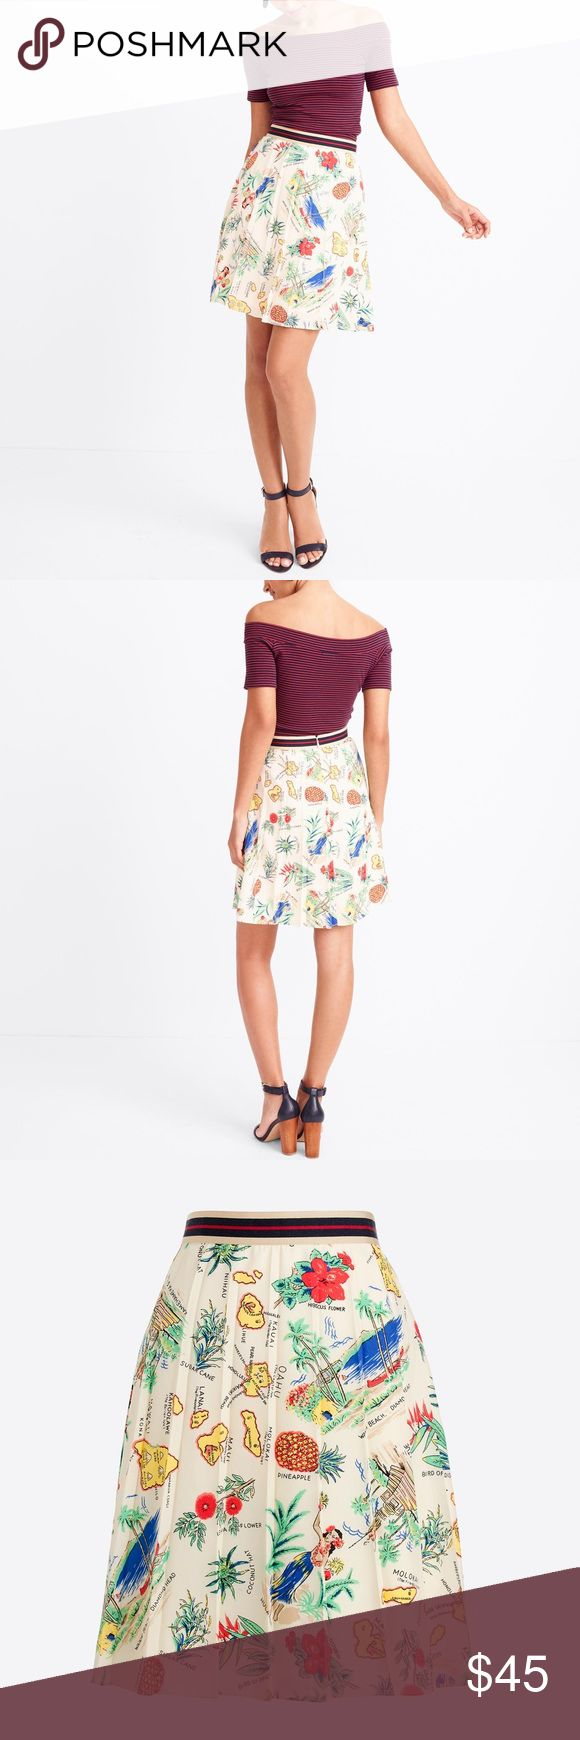 """J.Crew Factory Printed & Pleated Skirt Size 10 NWT In excellent condition! J.Crew Factory Printed & Pleated Skirt. Size 10. NWT! Damage stain and smoke free. Reasonable offers are welcome! Fitted at waist. Sits above waist. 21"""" long. Falls to knee. Back zip. Lined. Machine wash. Poly. J. Crew Factory Skirts"""